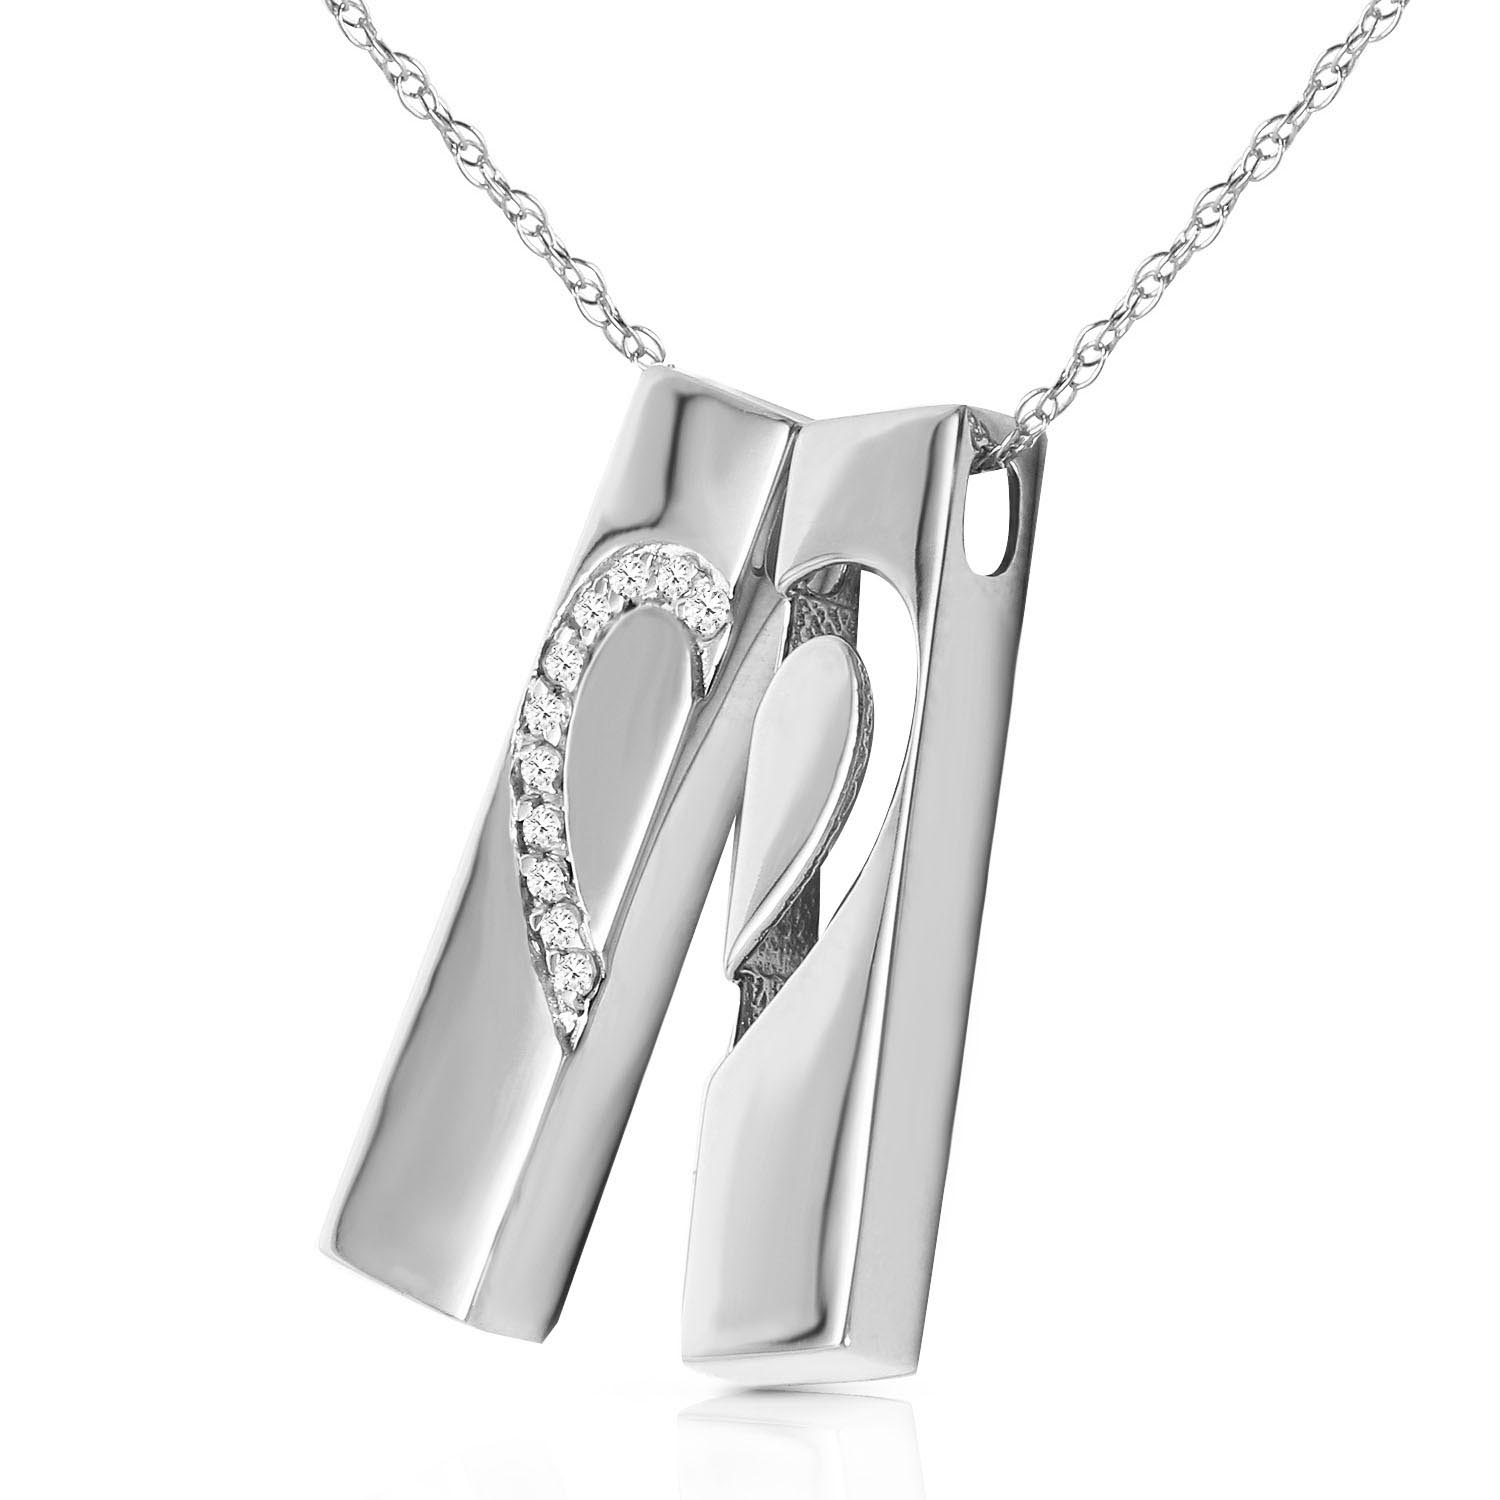 Diamond Split Heart Pendant Necklace in 14K White Gold 5491W